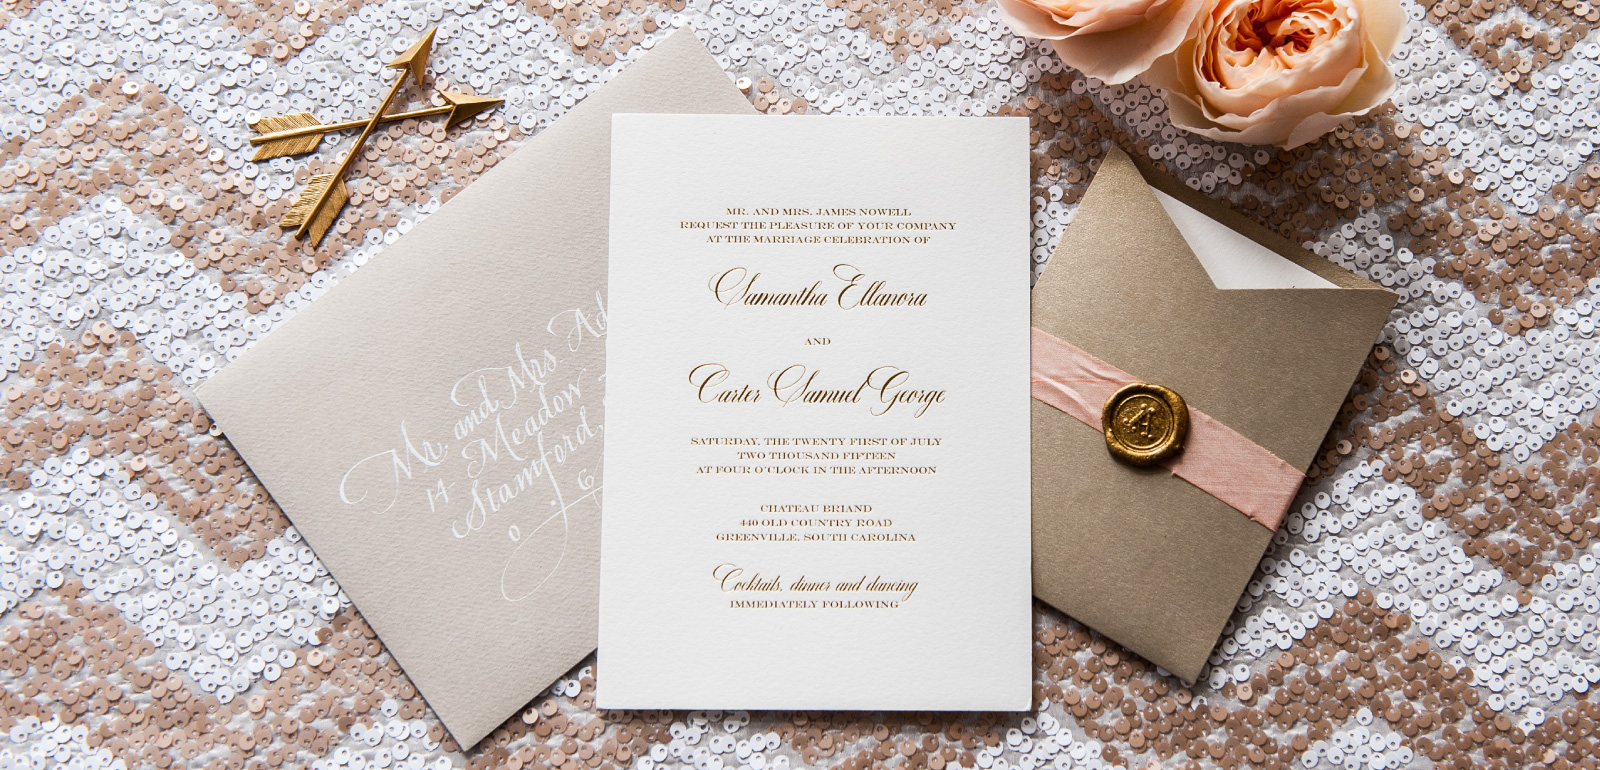 Gold and Silver Foil Wedding Invitations – Wedding Invitations Gold Coast